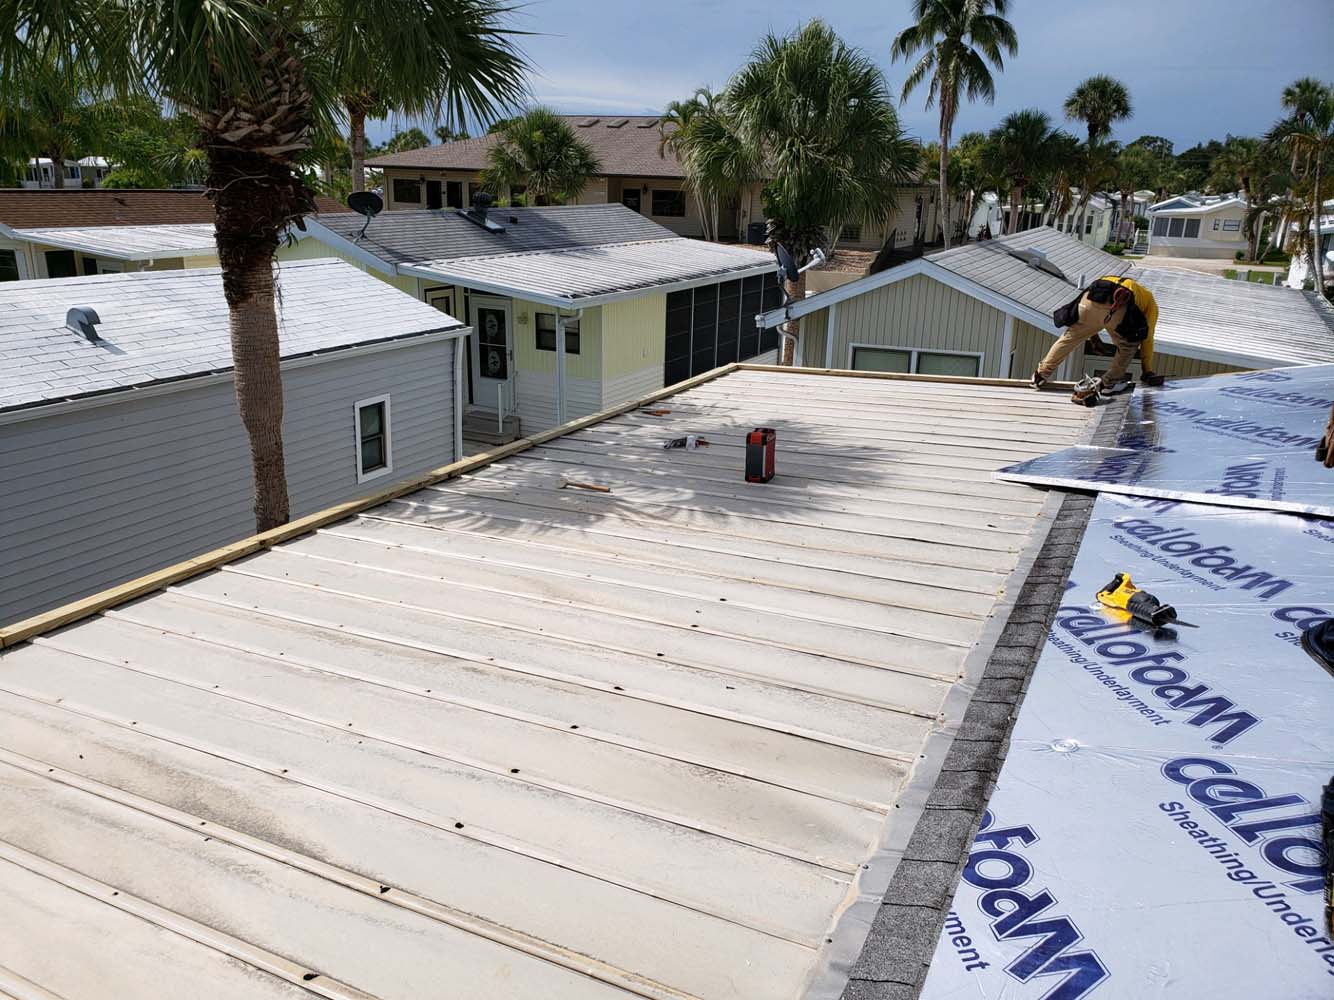 Roof Repair Mobile Home (Fort Myers, FL)